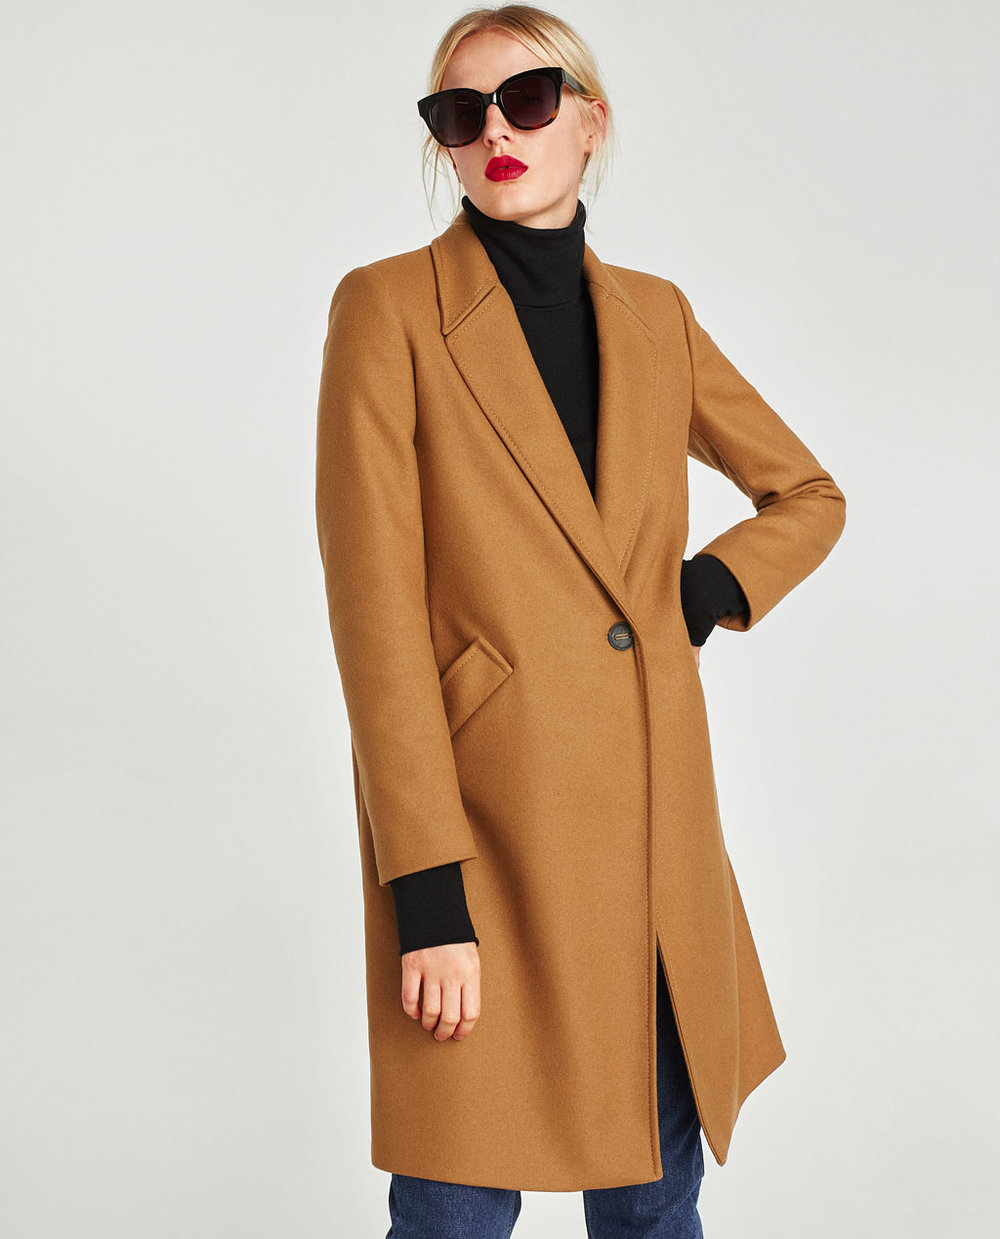 Masculine Wool Coat, Zara, £95.99